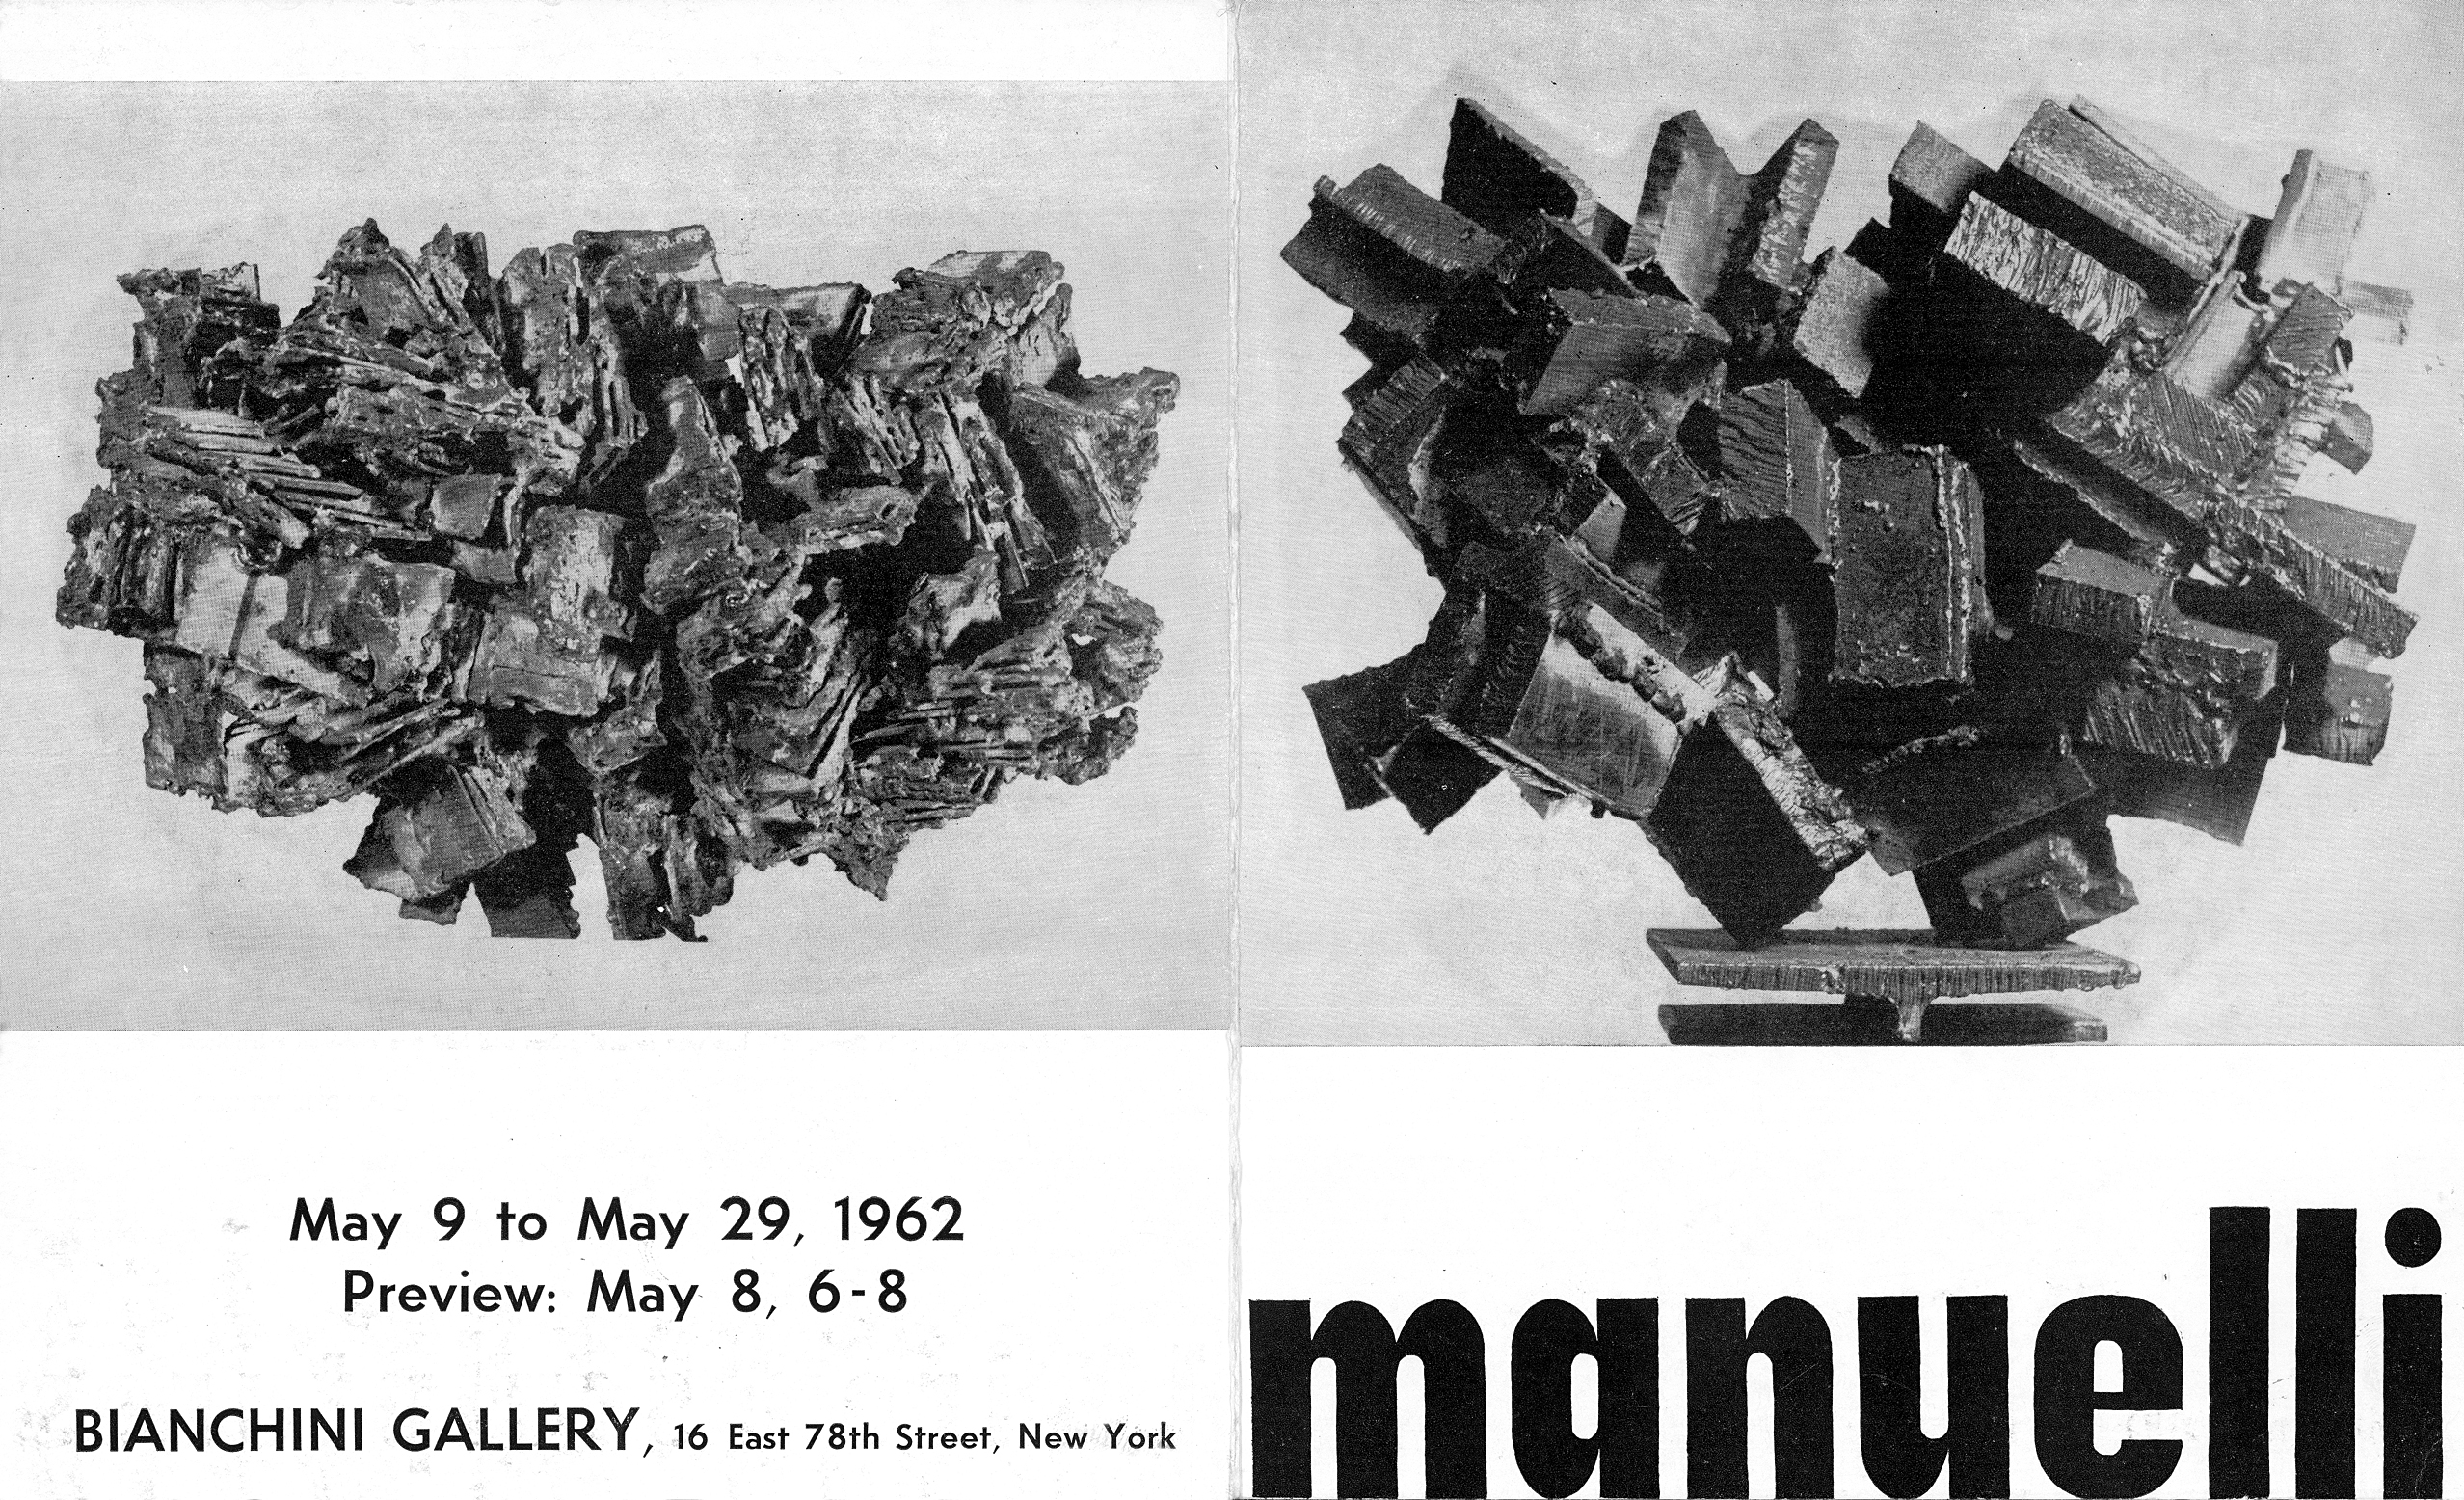 Bianchini gallery - 1962